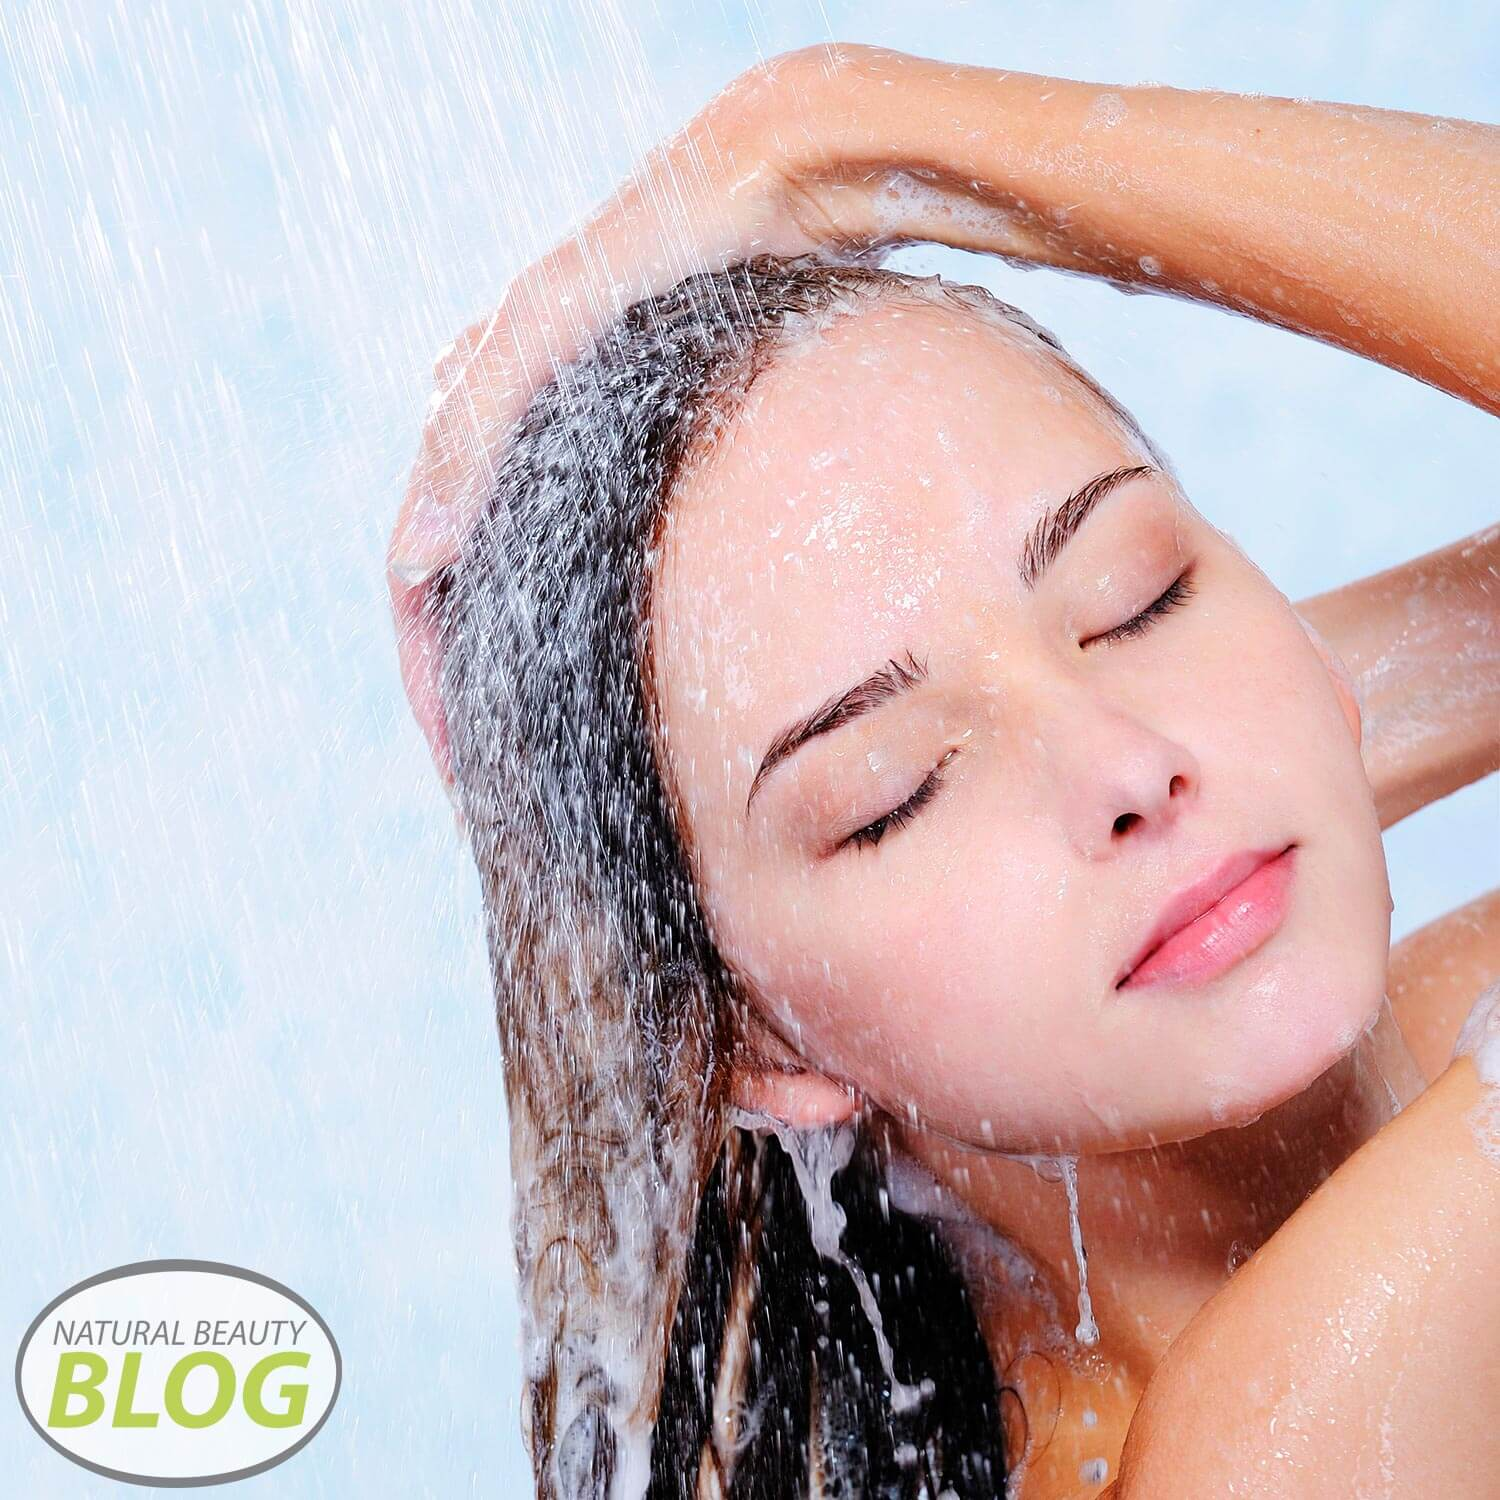 Simple hair care tips for healthy hair - hair washing